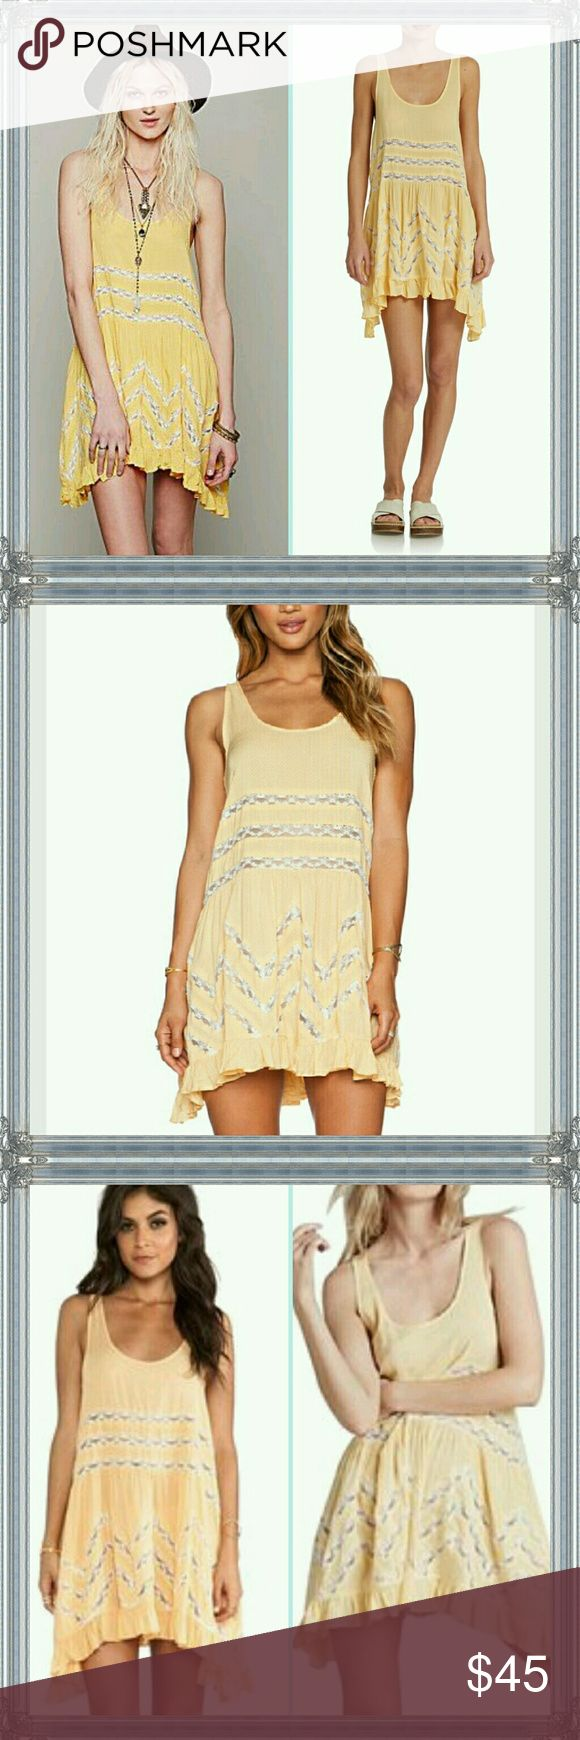 Free people voile & lace trapeze dress Mango combo, soft pale yellow with white lace and tiny dots. Excellent condition / EUC Free People Dresses Mini